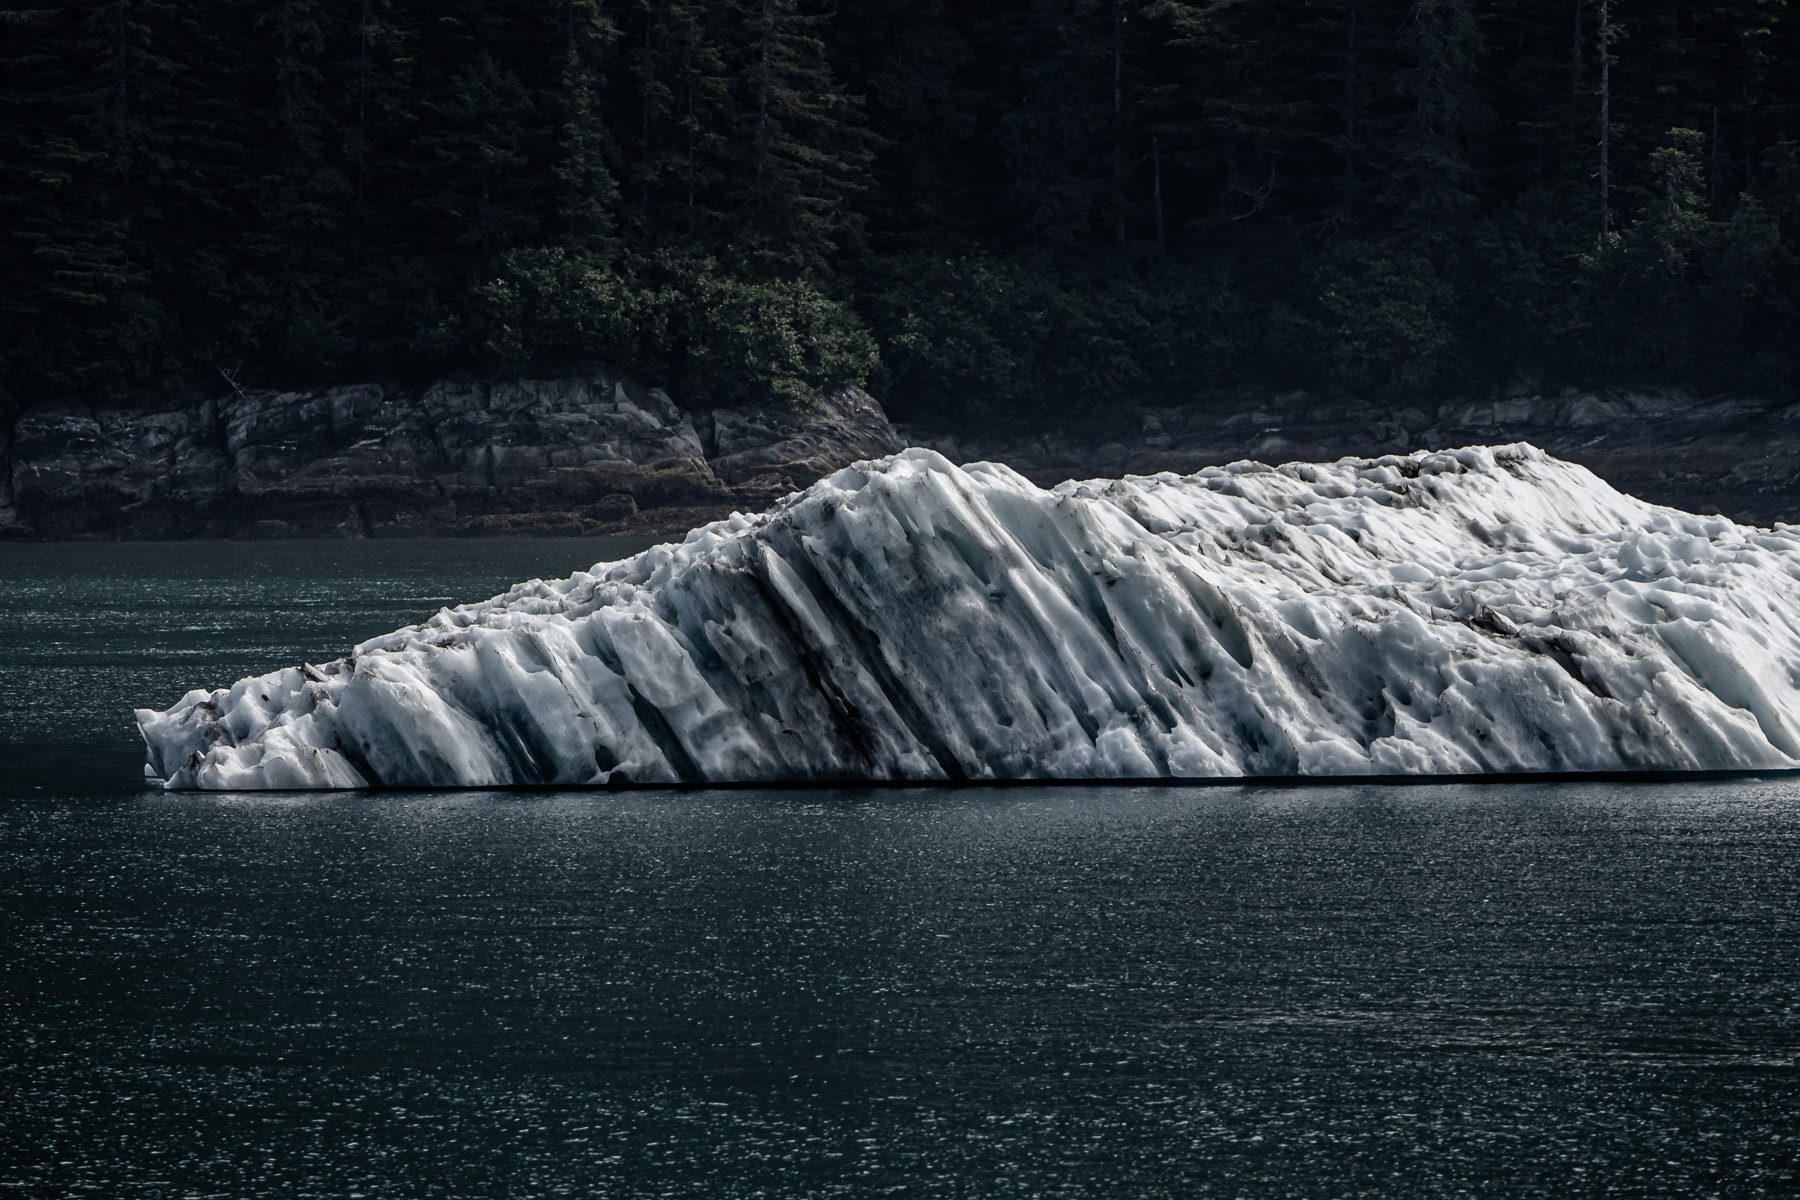 An iceberg floats in Alaska's Stephens Passage near Juneau.